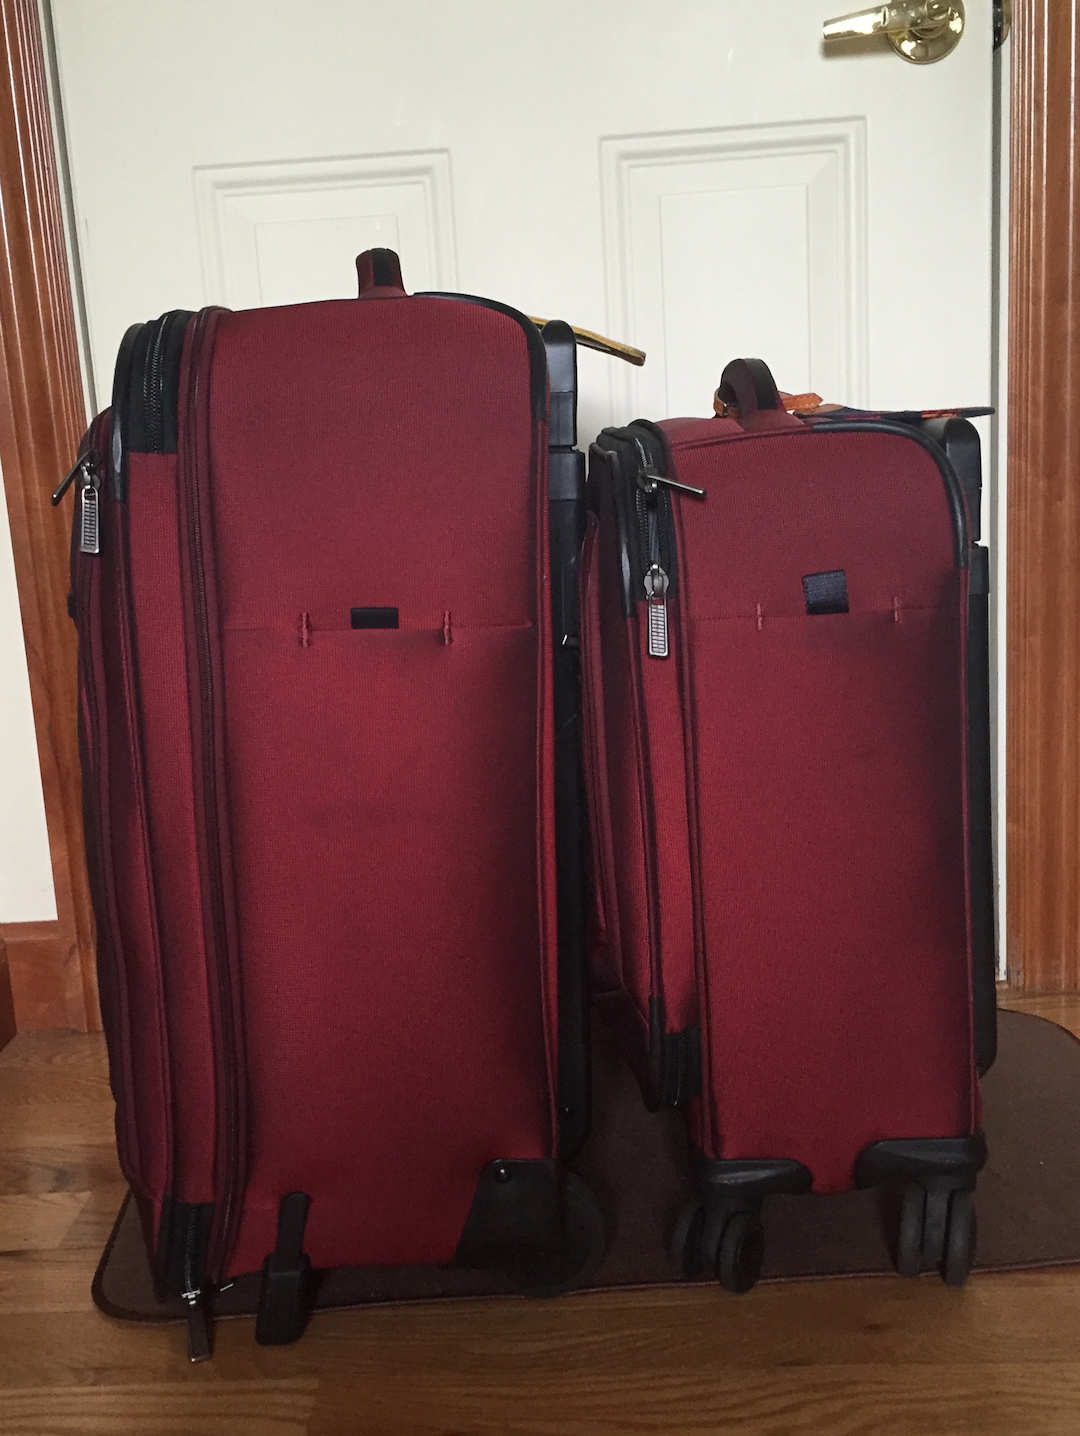 Suitcases, reduced